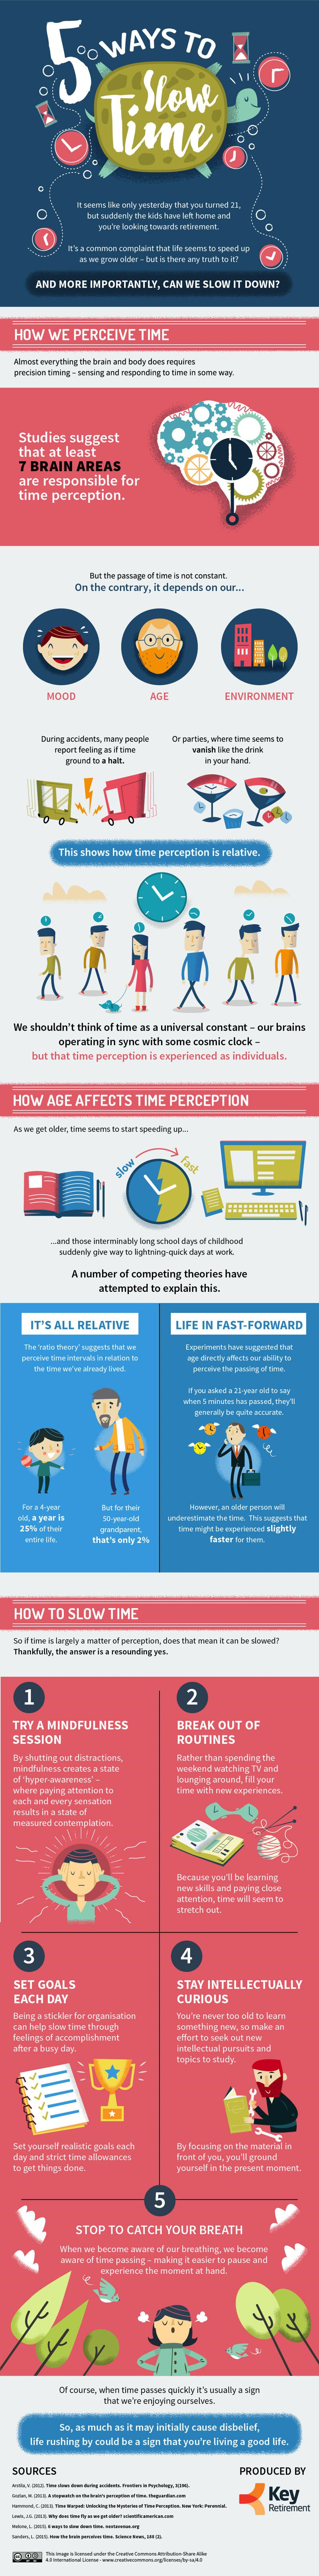 How to Slow Down Time infographic